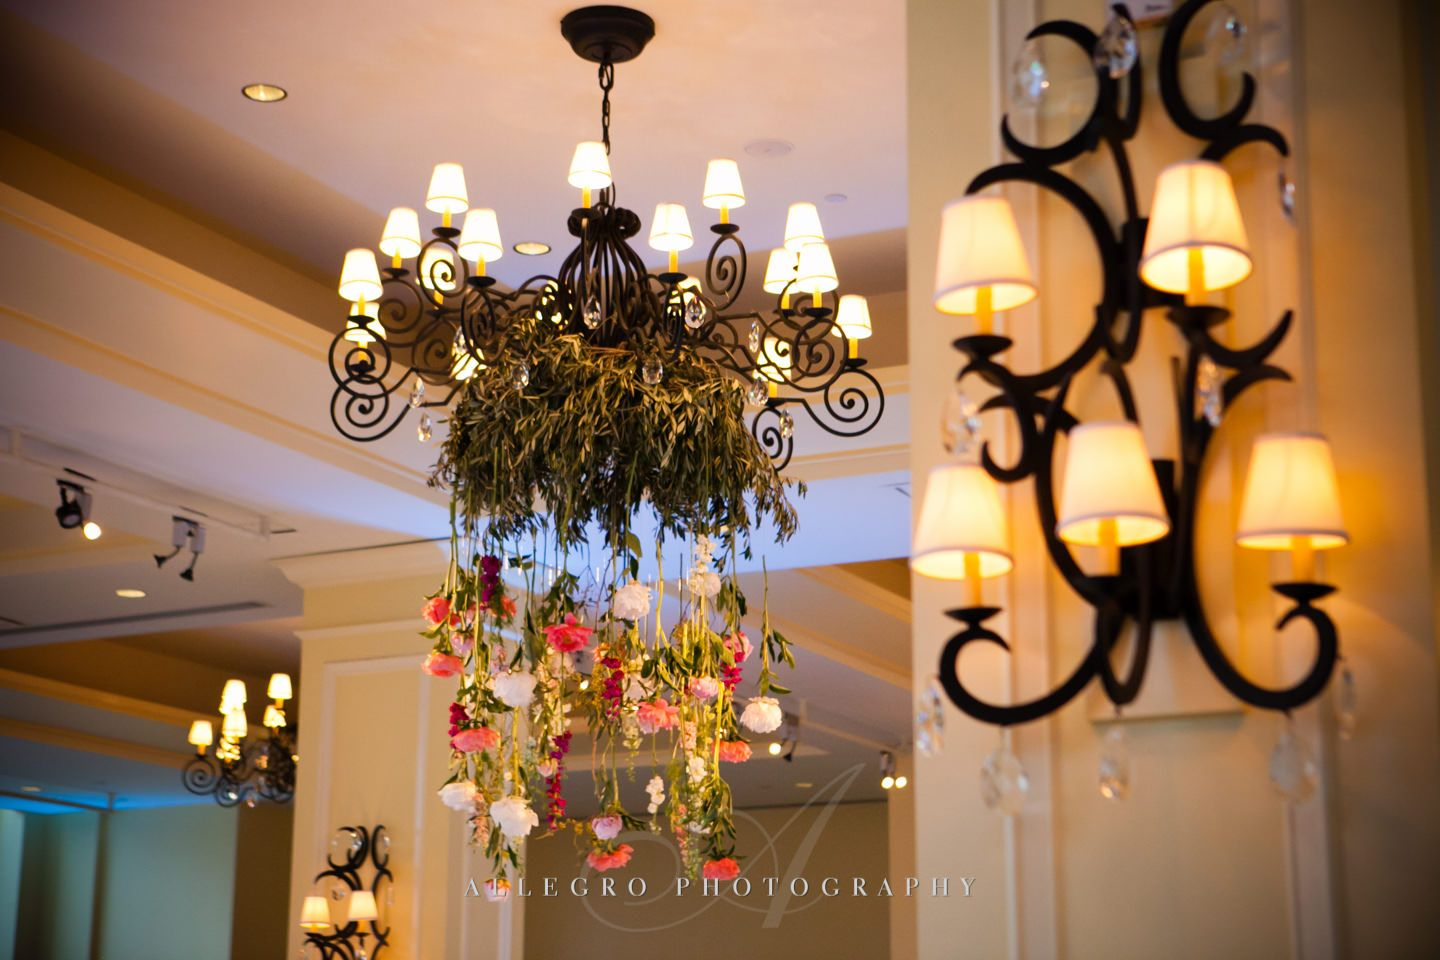 floral chandelier with pink white green peonies dripping down- photo by allegro photography